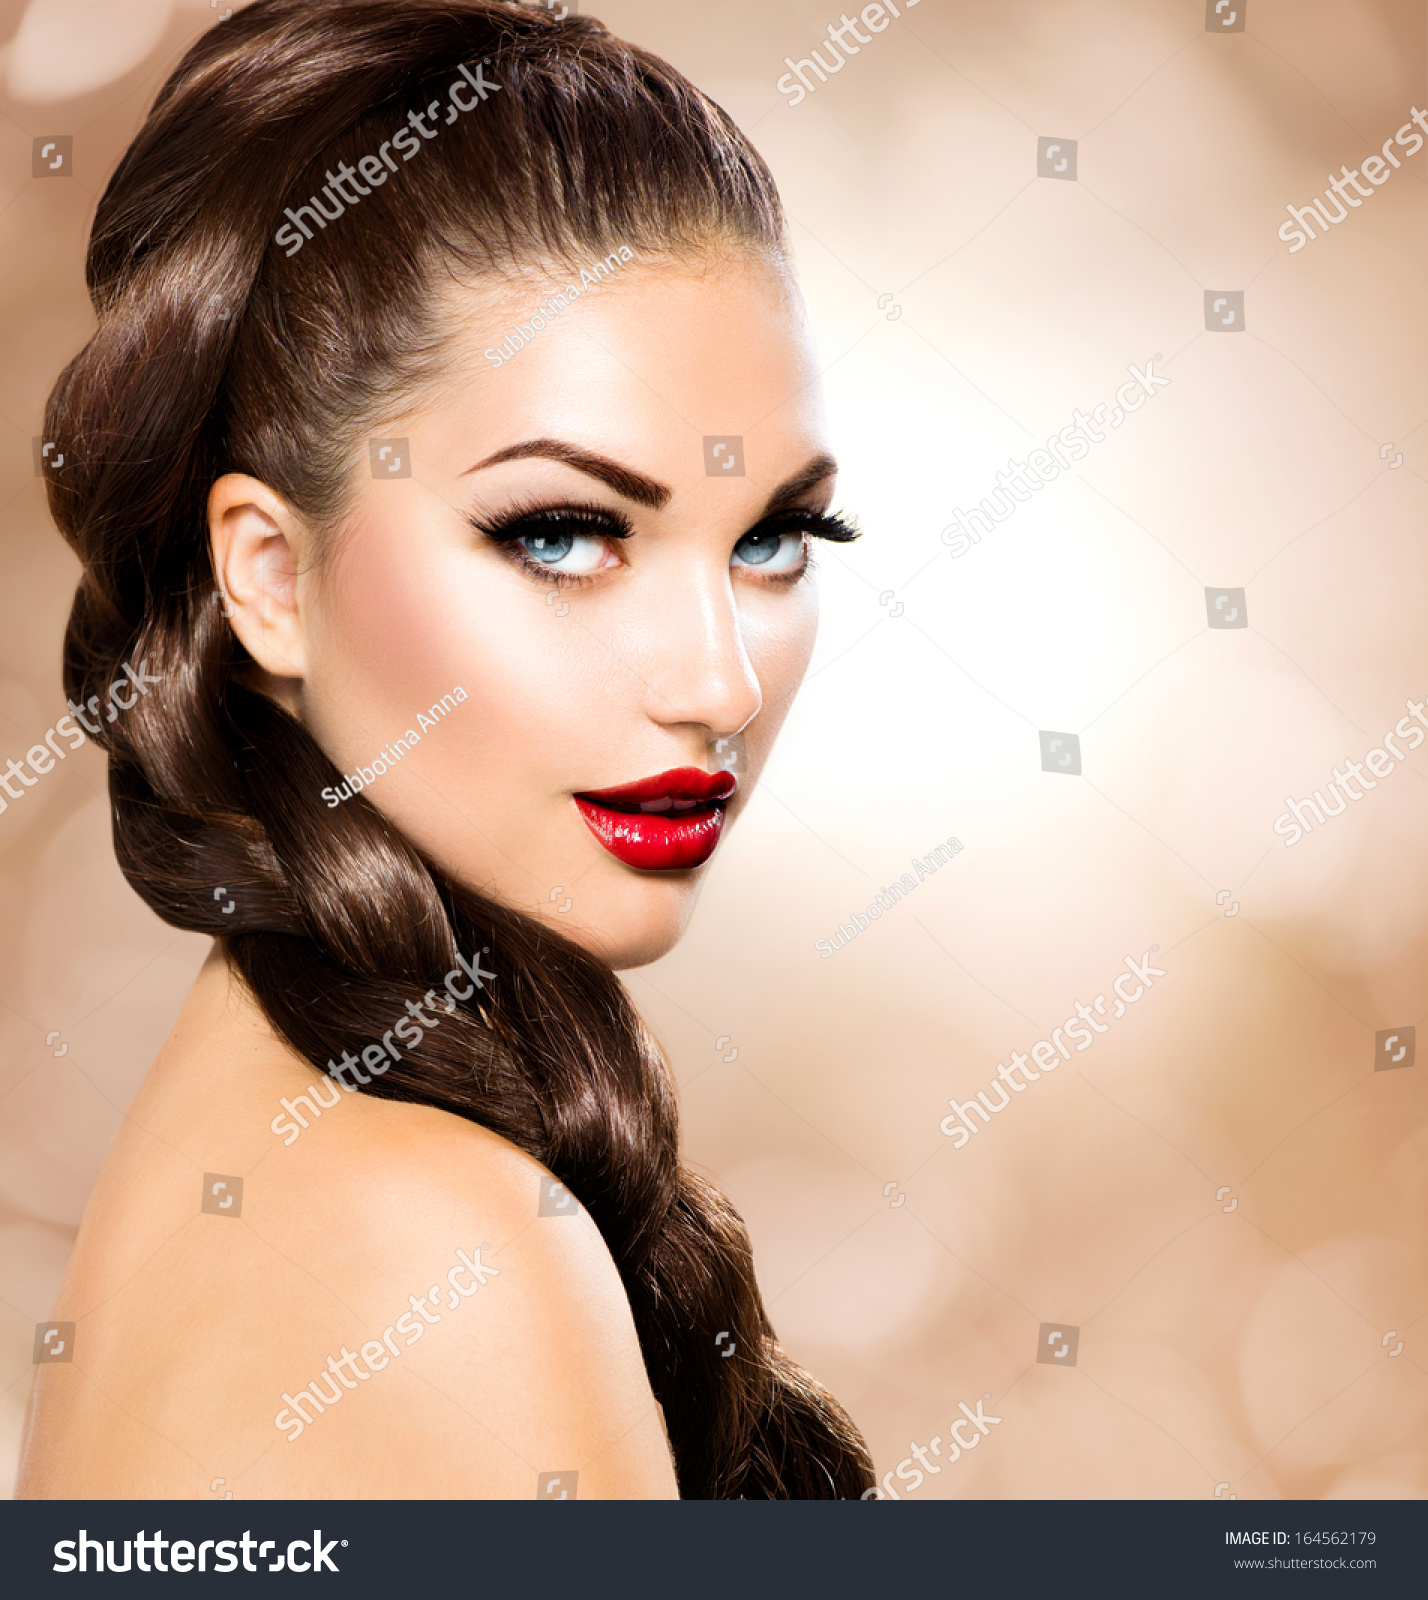 Perfection Beauty: Hair Braid Beautiful Woman Healthy Long Stock Photo